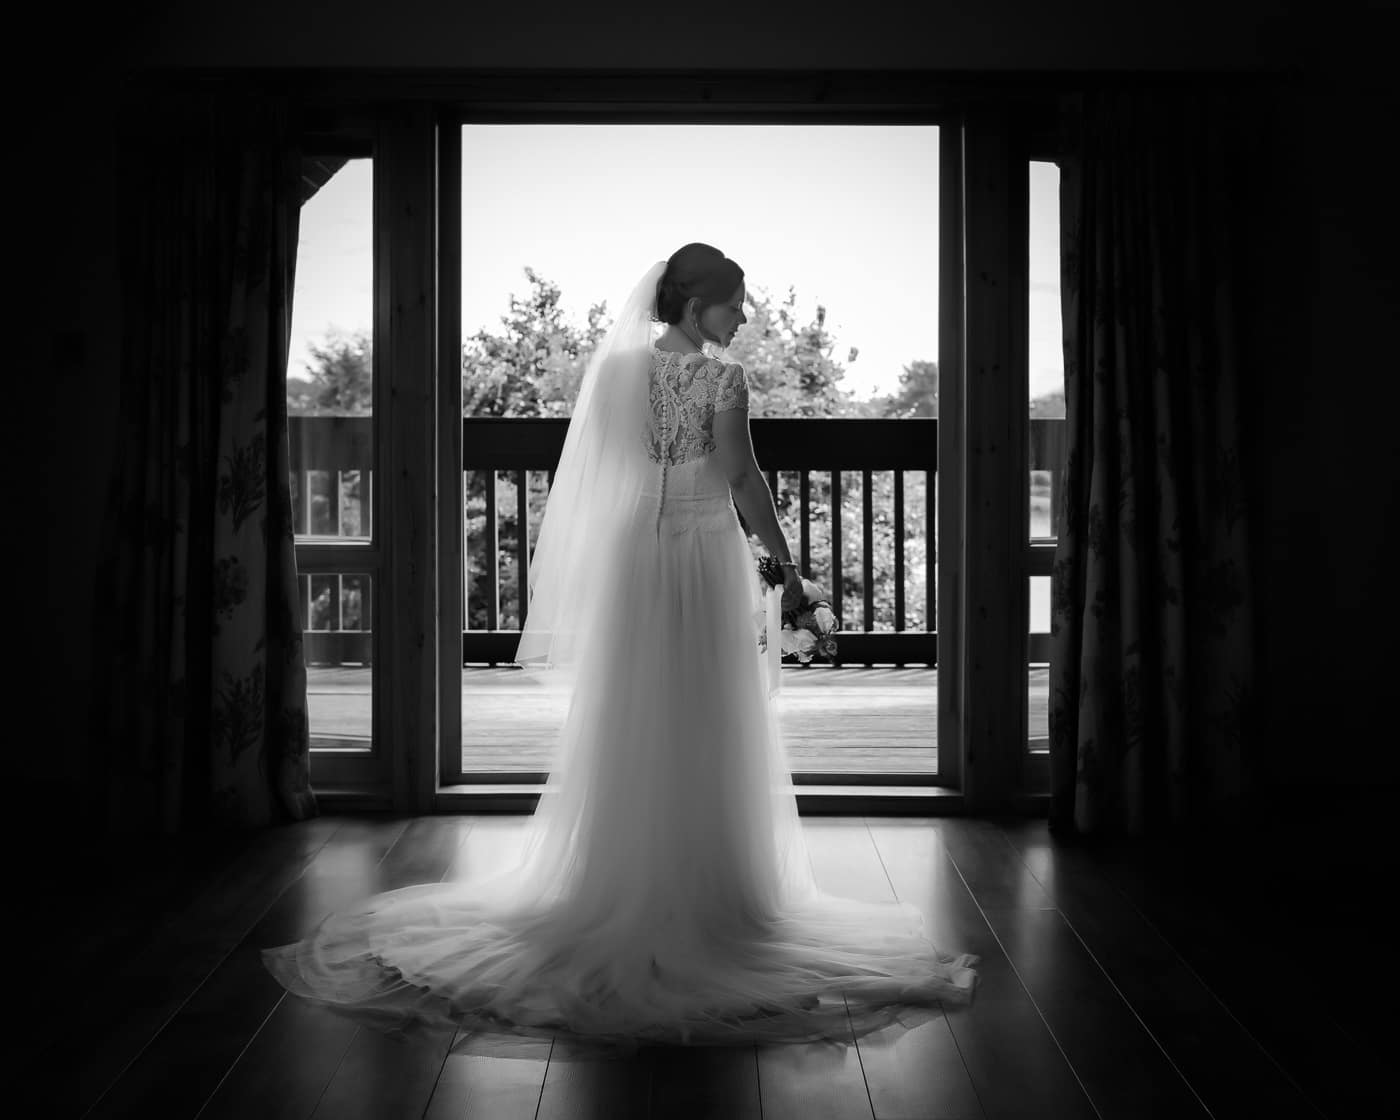 Bride getting ready at Forbes of Kingennynear Dundee Scotland